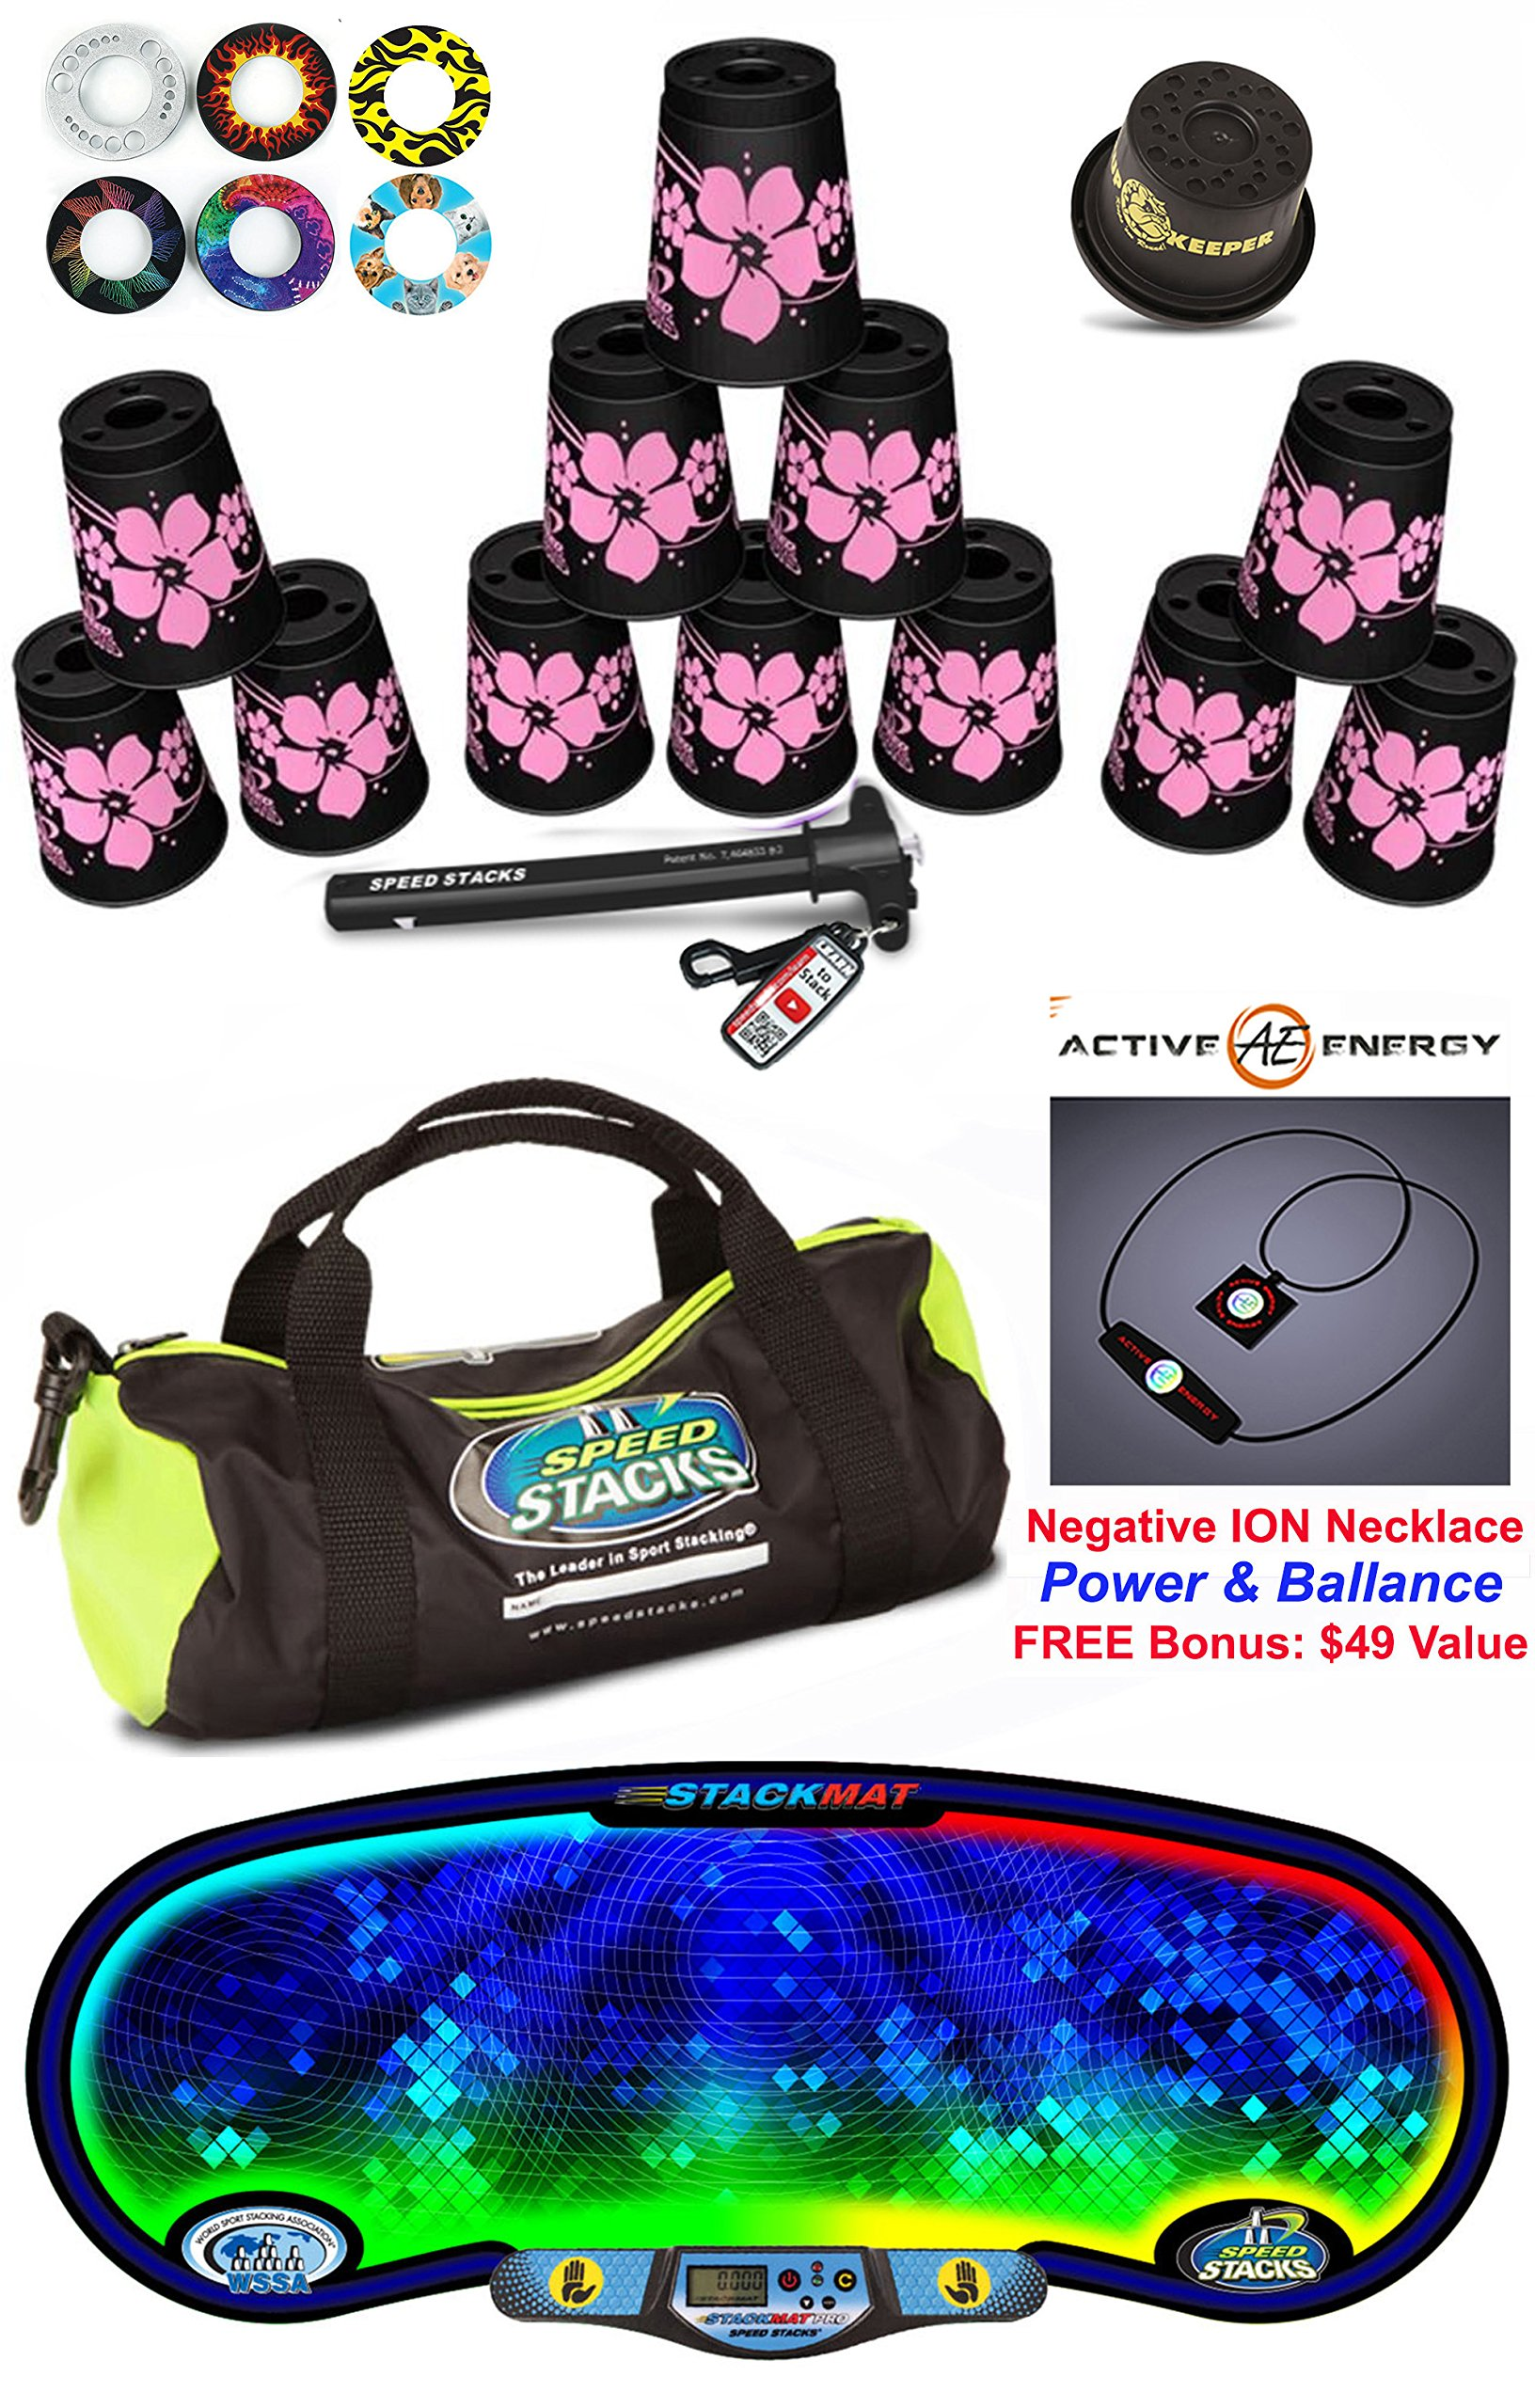 Speed Stacks Custom Combo Set - The Works: 12 PINK HAWAIIAN 4'' Cups, Cup Keeper, Quick Release Stem, Pro Timer, Gen 3 Premium VOXEL GLOW Mat, Gear Bag & FREE: Active Energy Necklace $49 Value